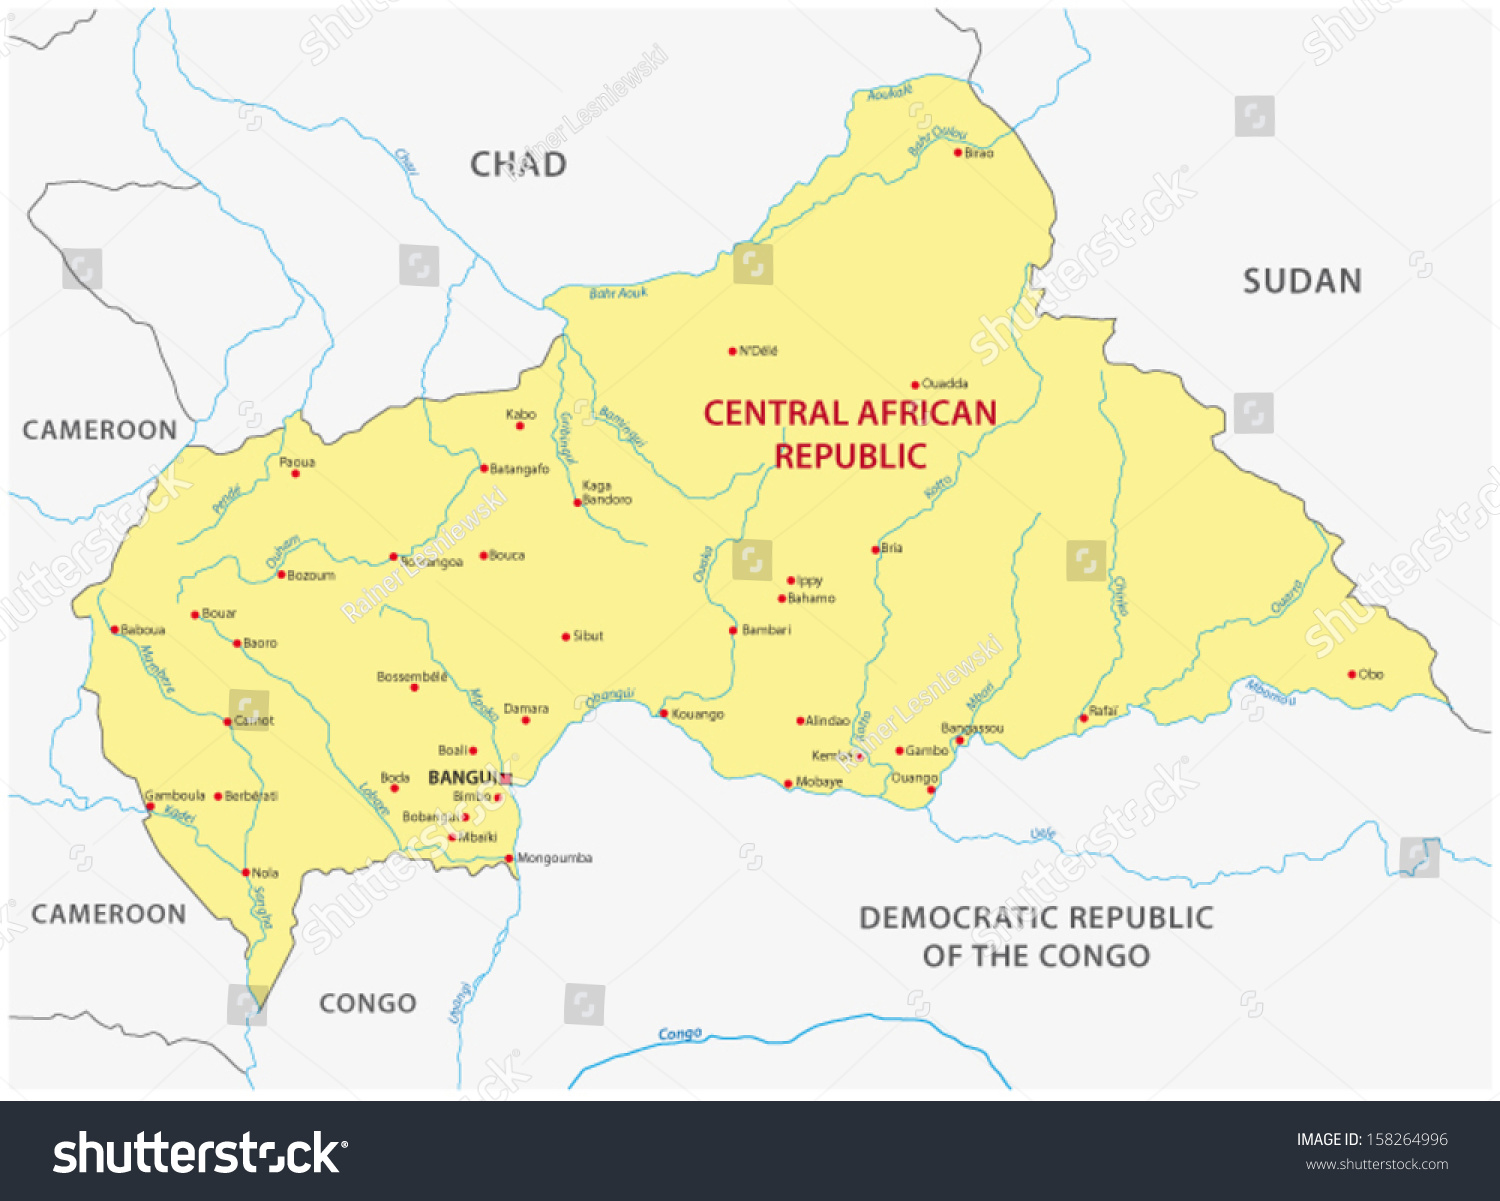 Central African Republic Map Stock Vector Shutterstock - Central african republic map